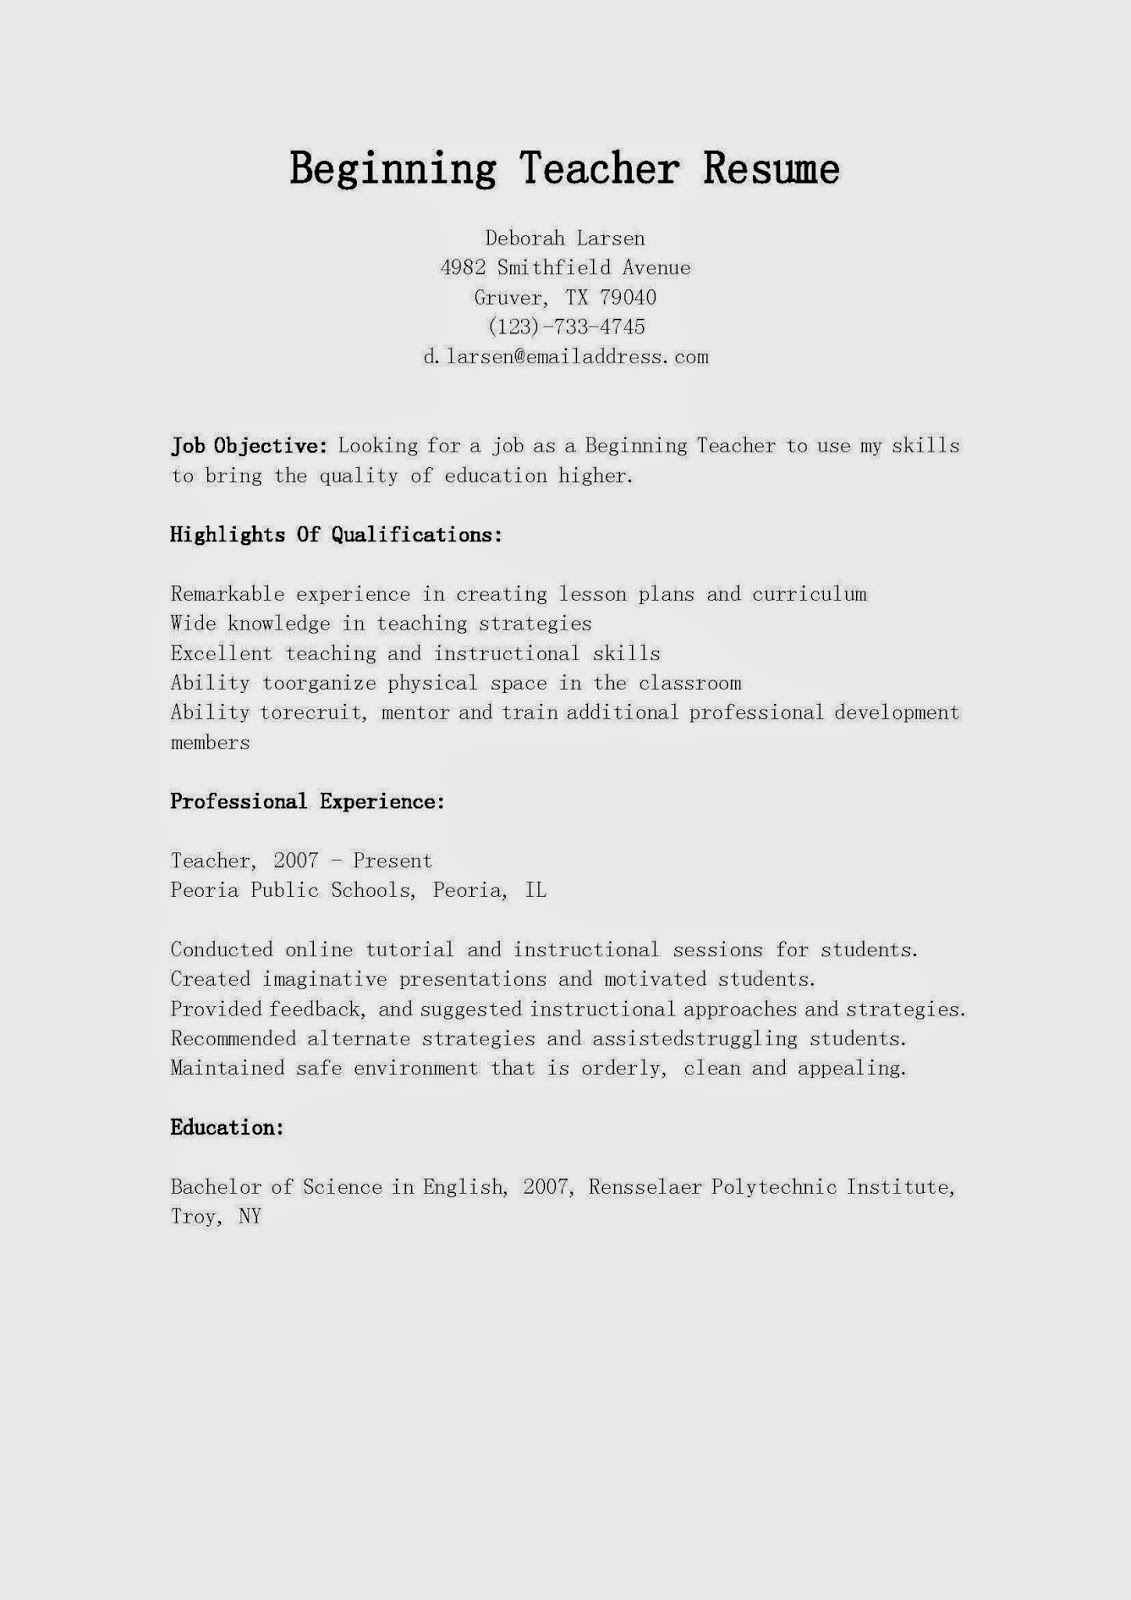 resume samples  beginning teacher resume sample